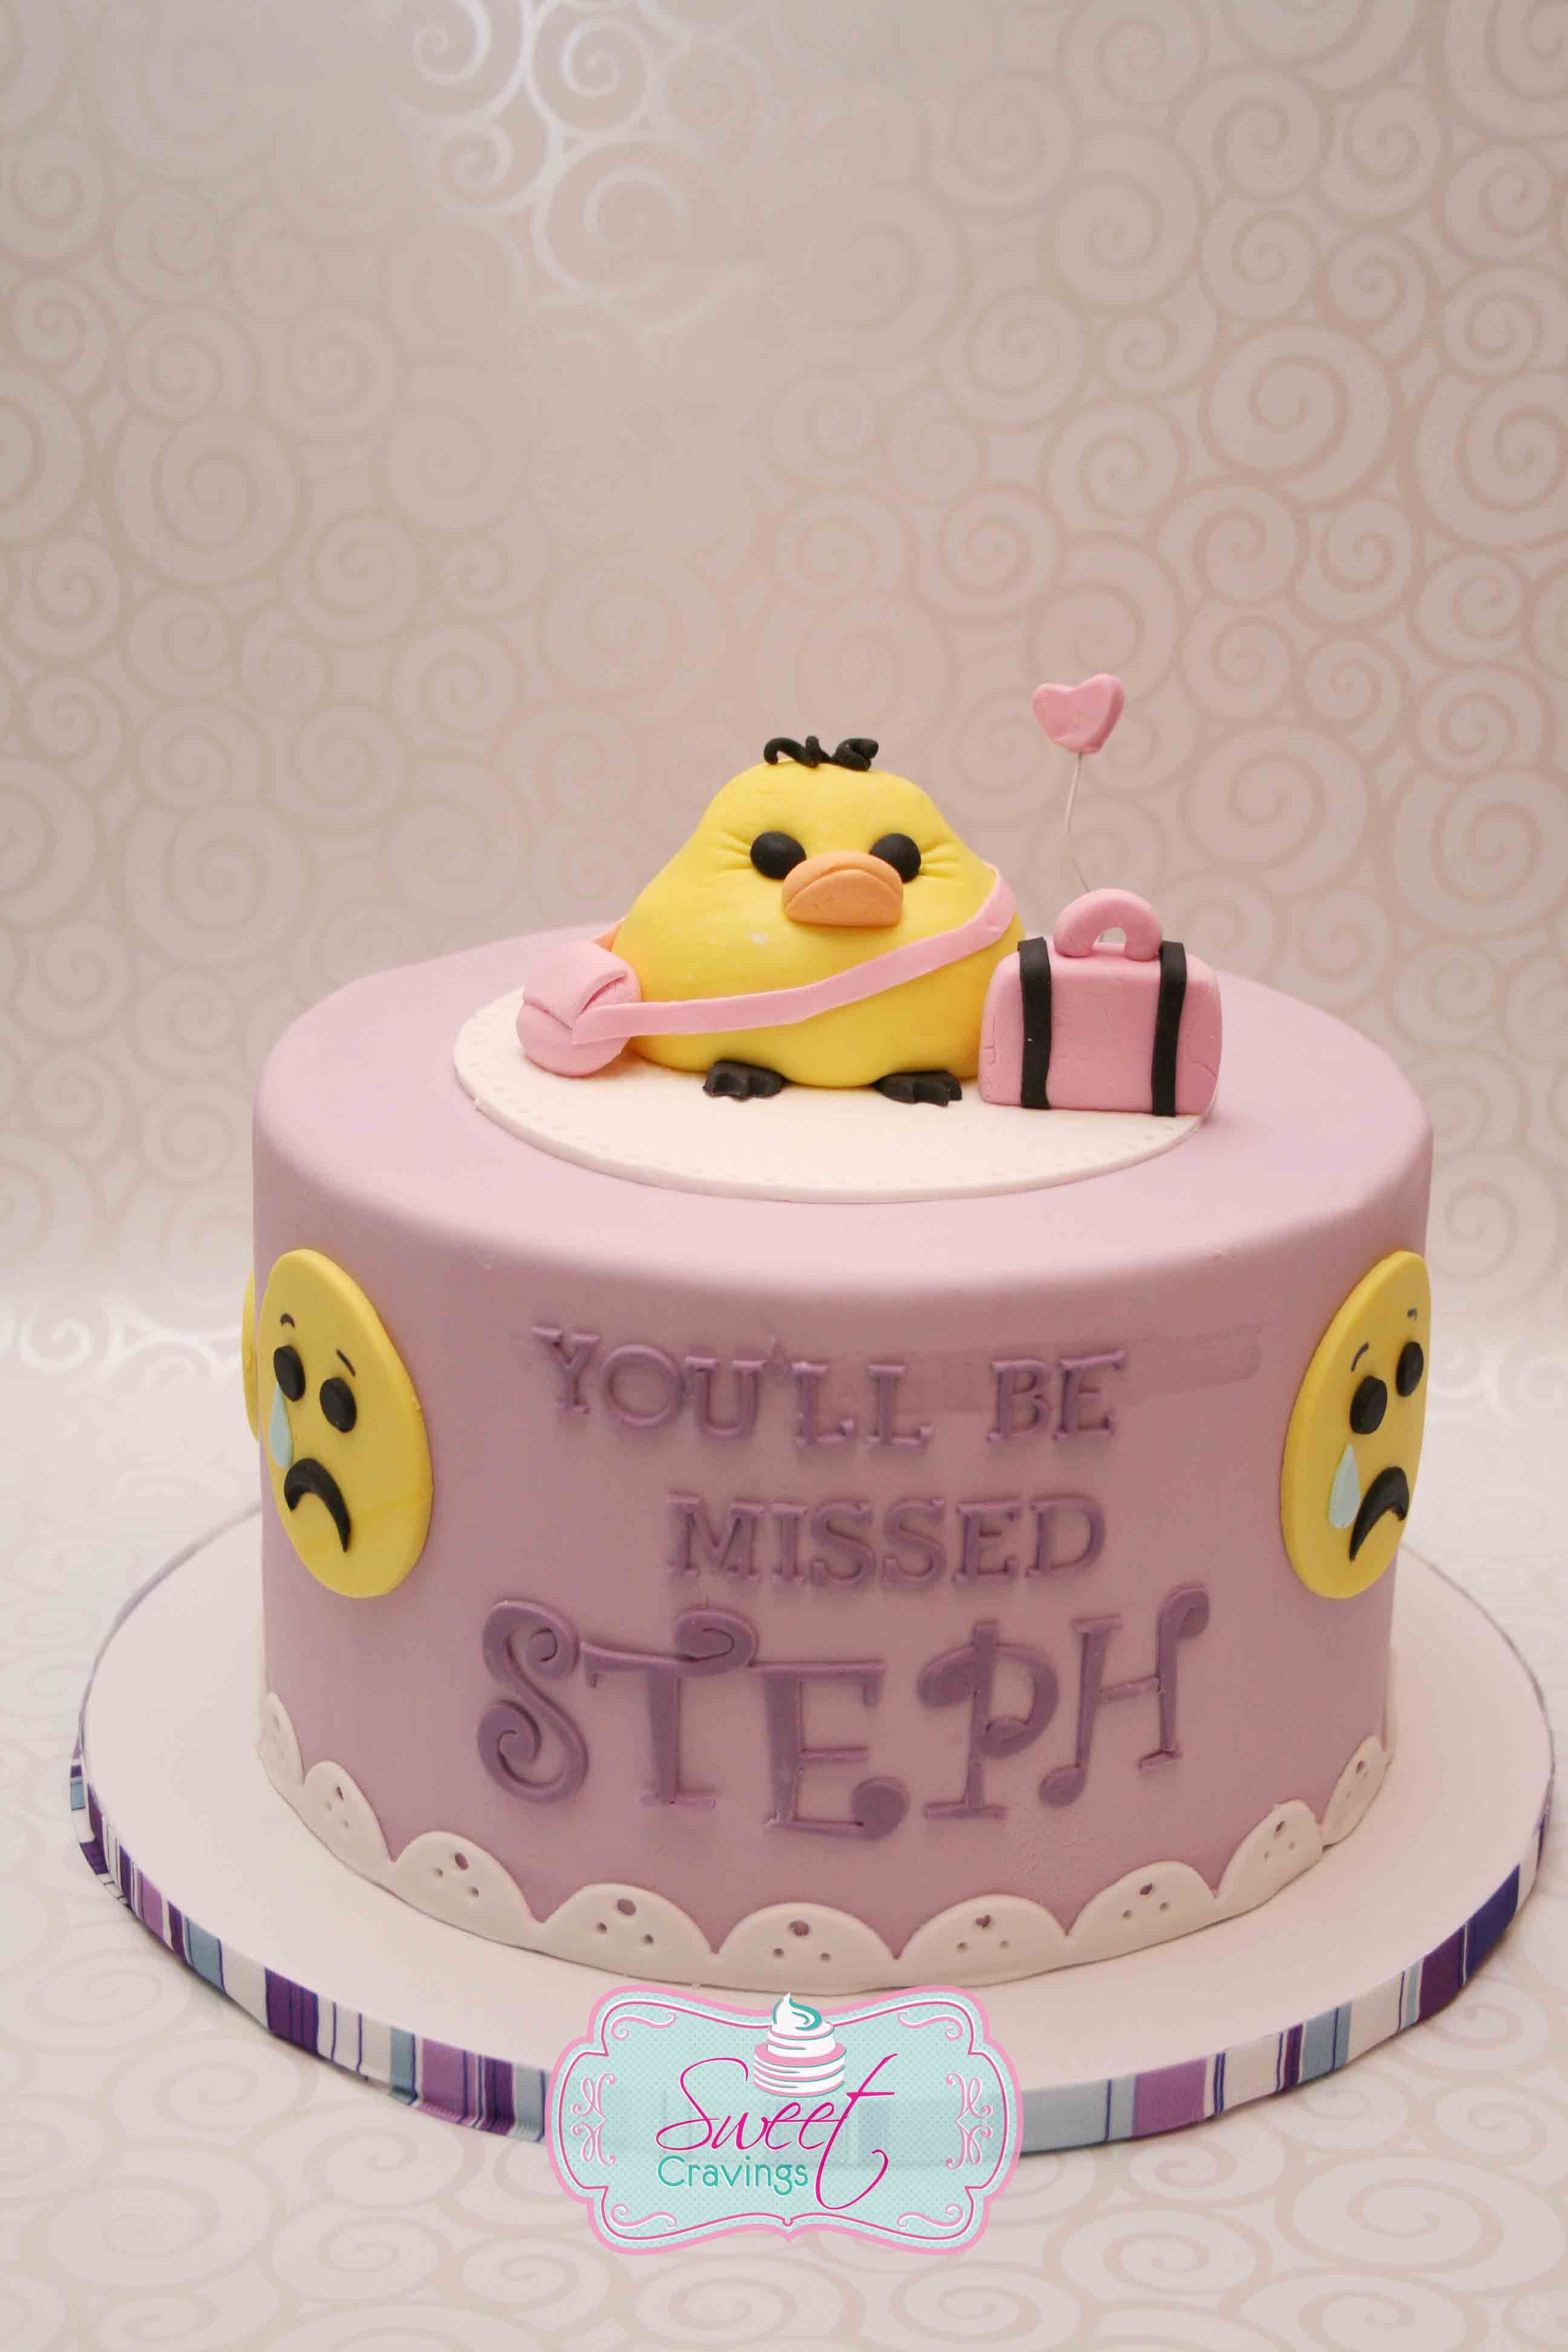 Awesome Going Away Cake With Emoticons Facebook Com Personalised Birthday Cards Epsylily Jamesorg